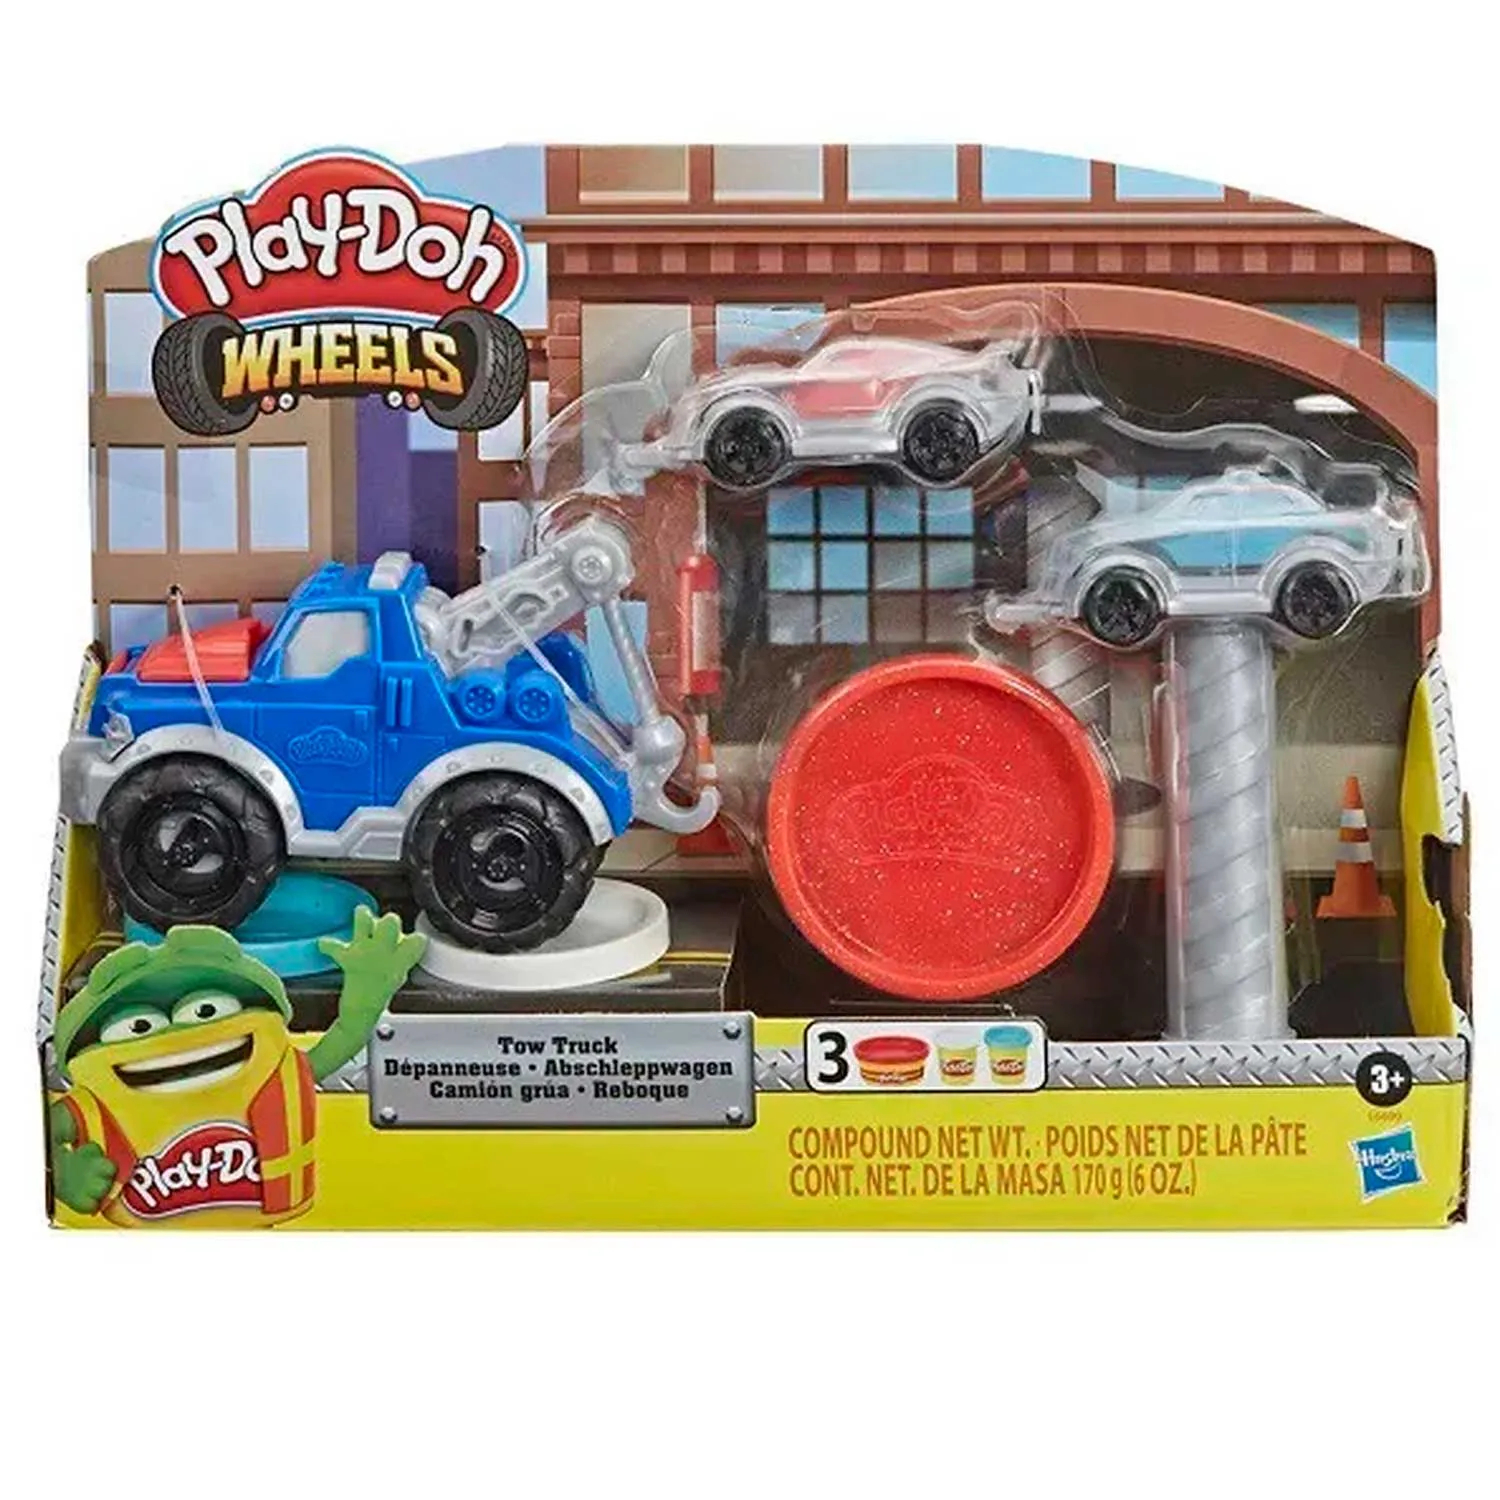 PLAY-DOH WHEELS REBOQUE HASBRO REF:E6690 3 ANOS +